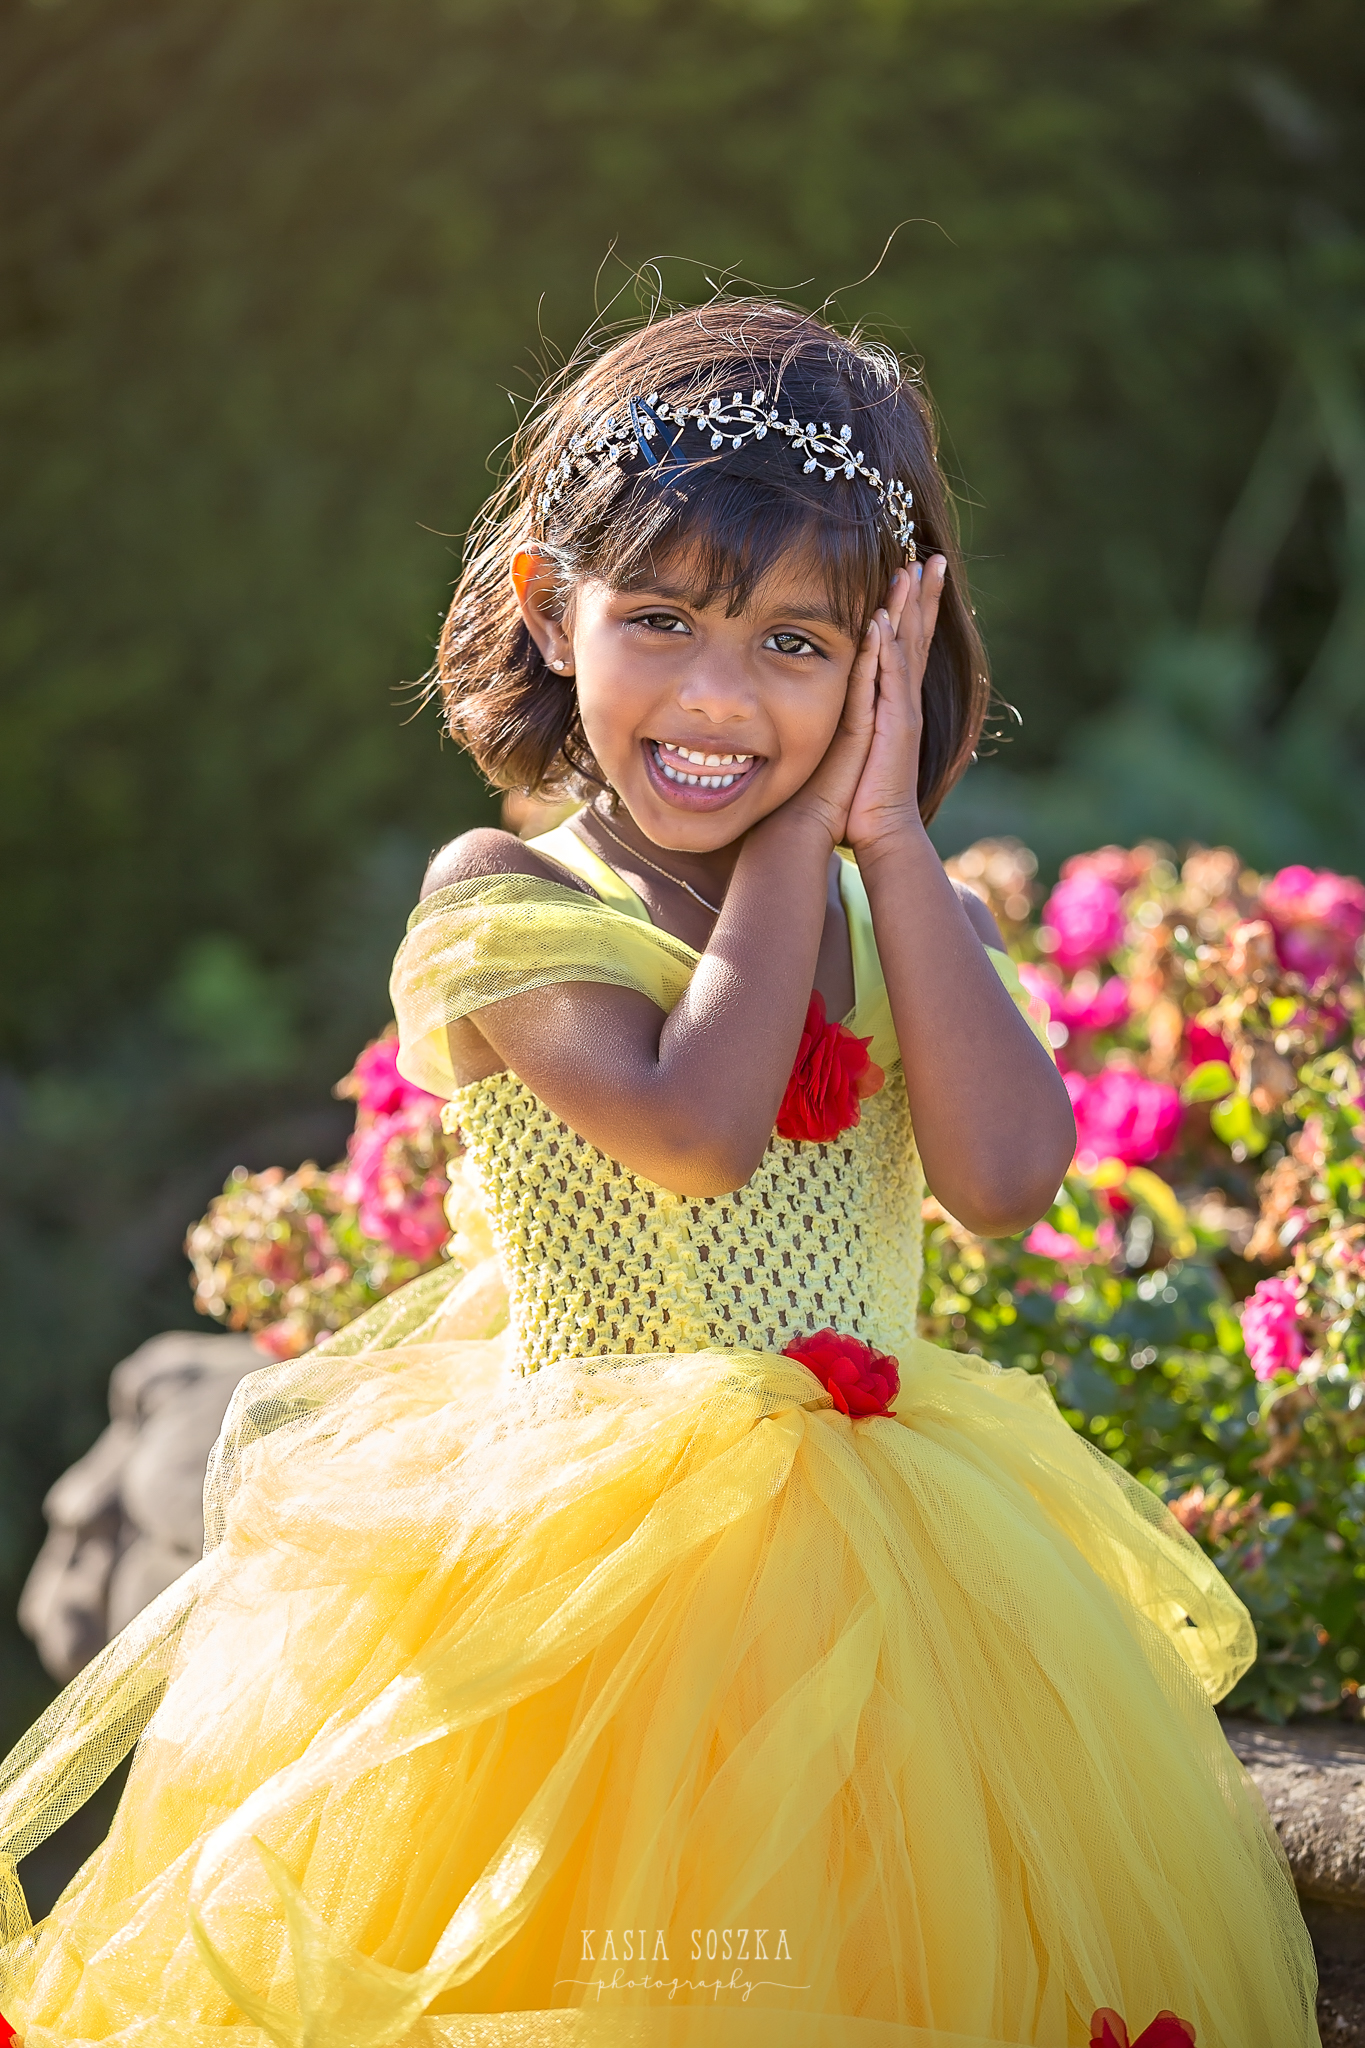 Child photography Leeds, child outdoor princess session Leeds, Yorkshire: beautiful little girl in a yellow princess dress running in a garden